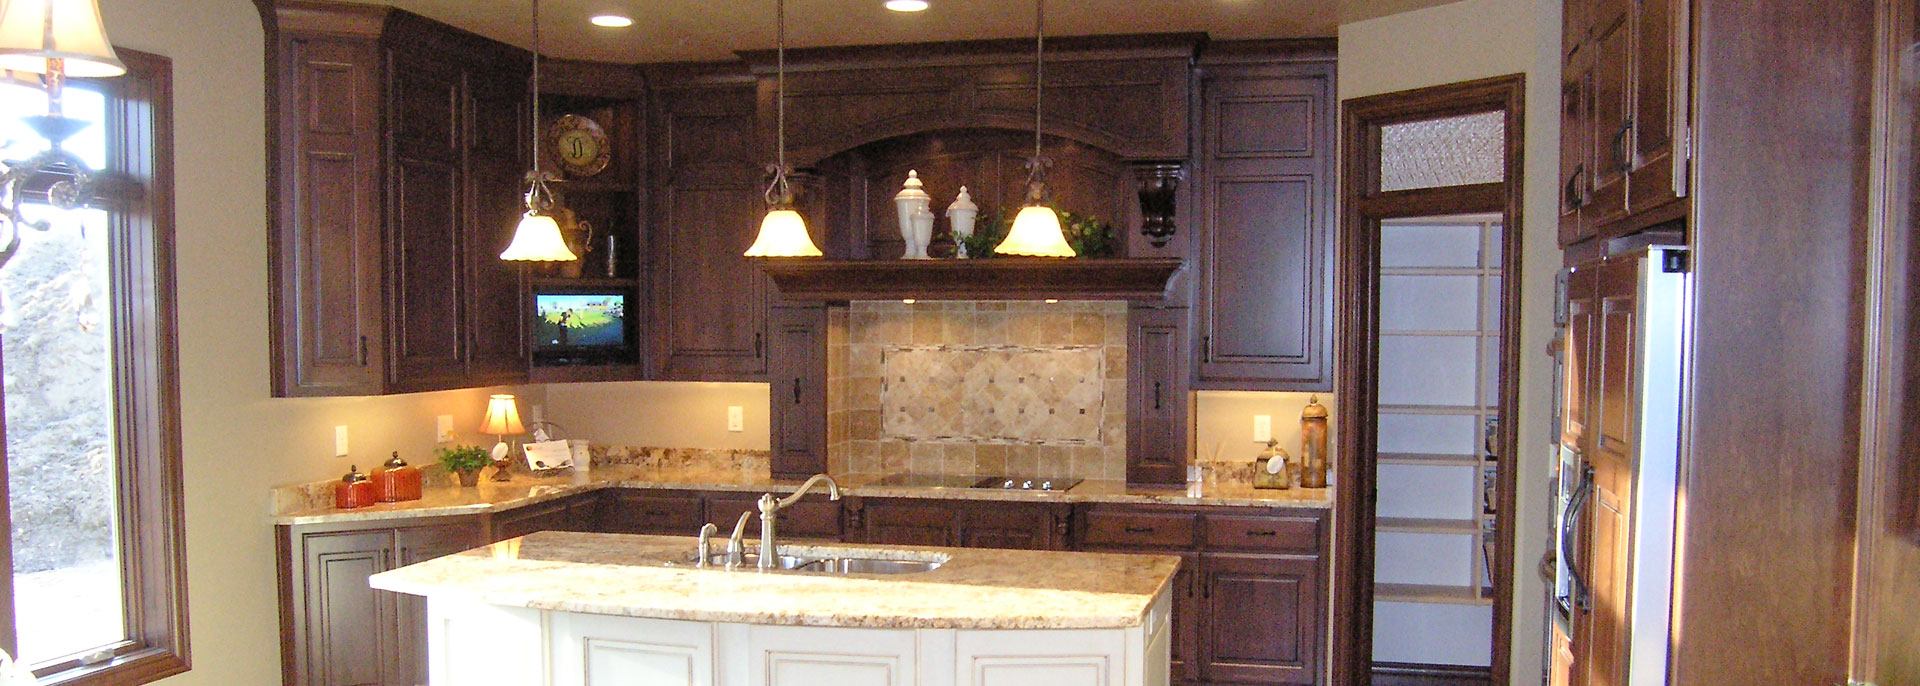 Heritage Woodworks Is A Wisconsin Cabinet Maker Providing Custom Cabinetry For Your Entire Home